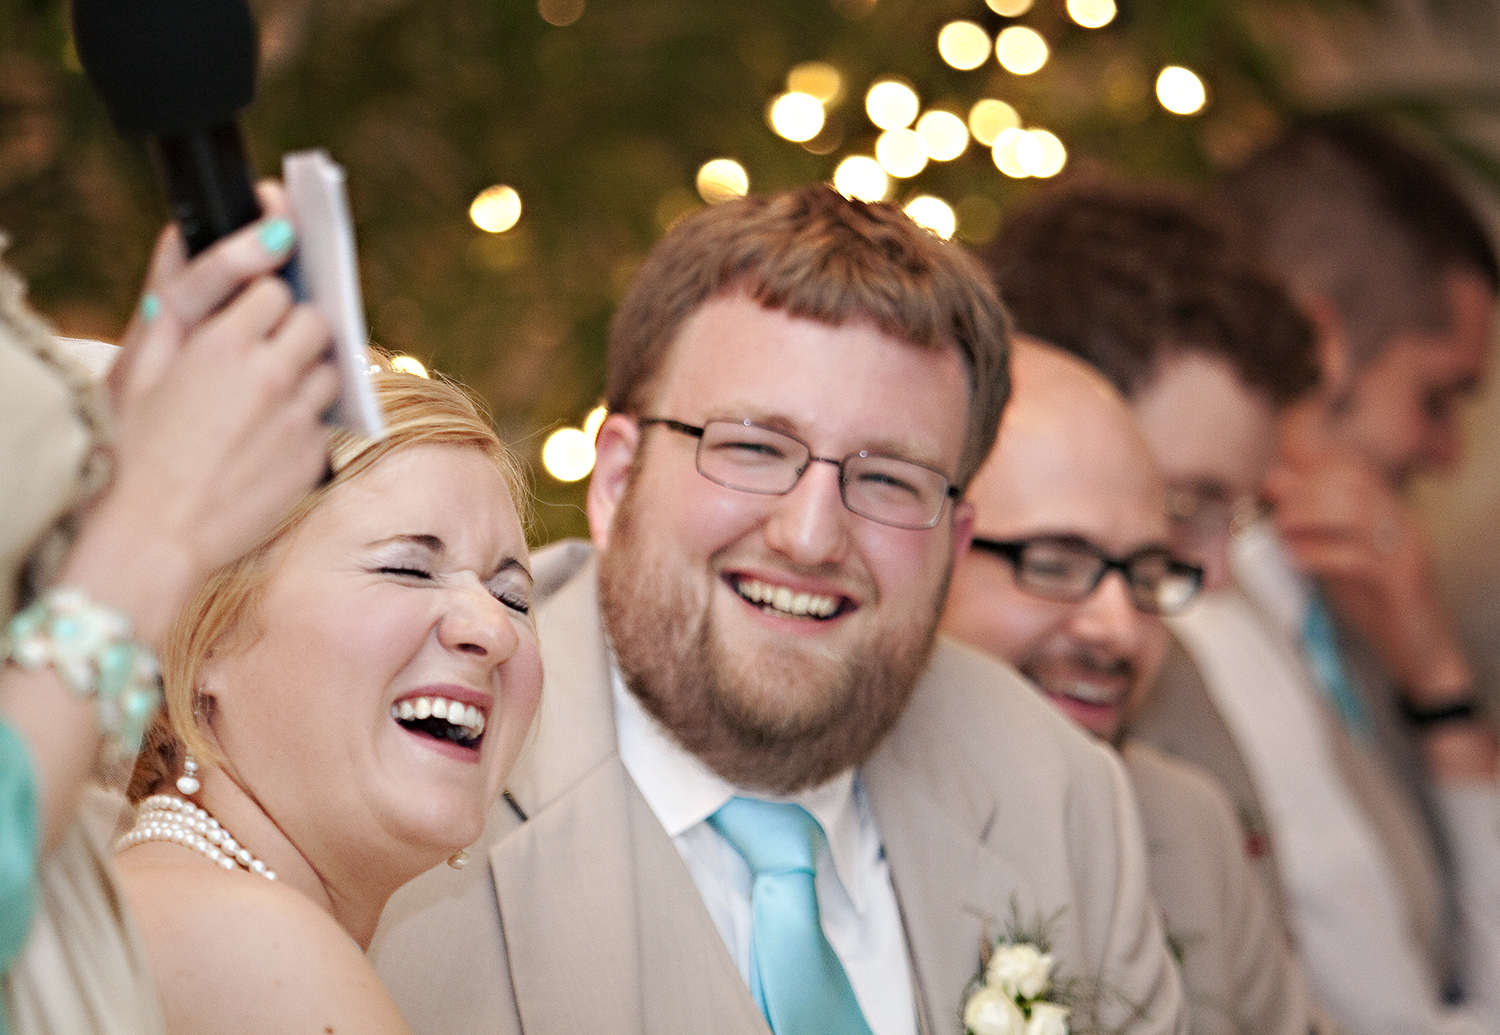 wedding toast image, wedding reception, emotional wedding photography, Piqua Ohio